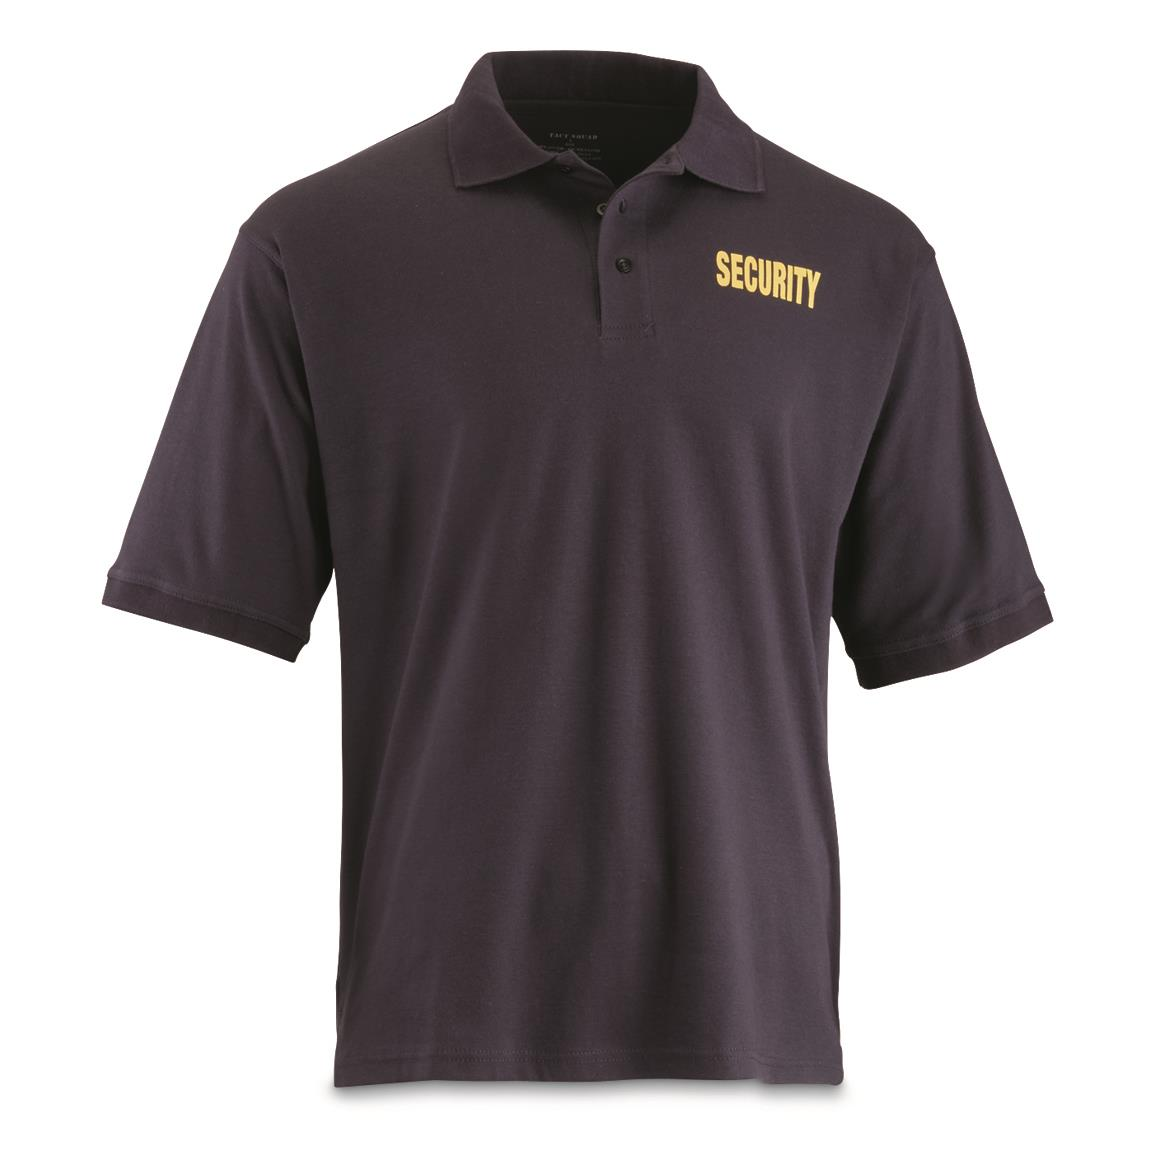 U.S. Municipal Surplus Security Polo Shirt with Gold Lettering, New, Navy